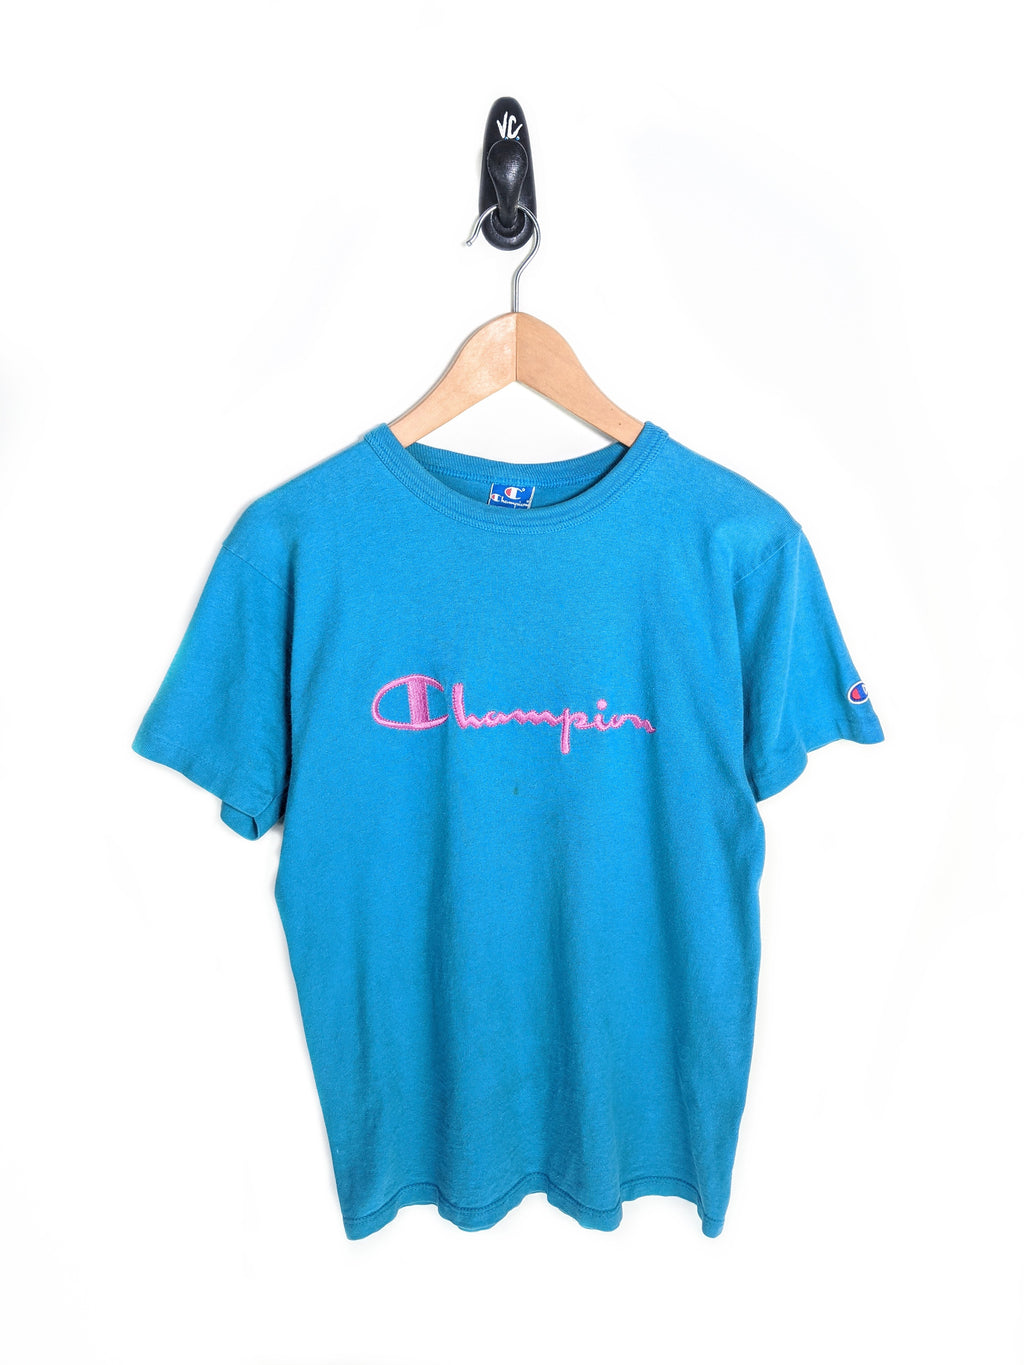 80's Champion Cotton Candy Tee (XS)